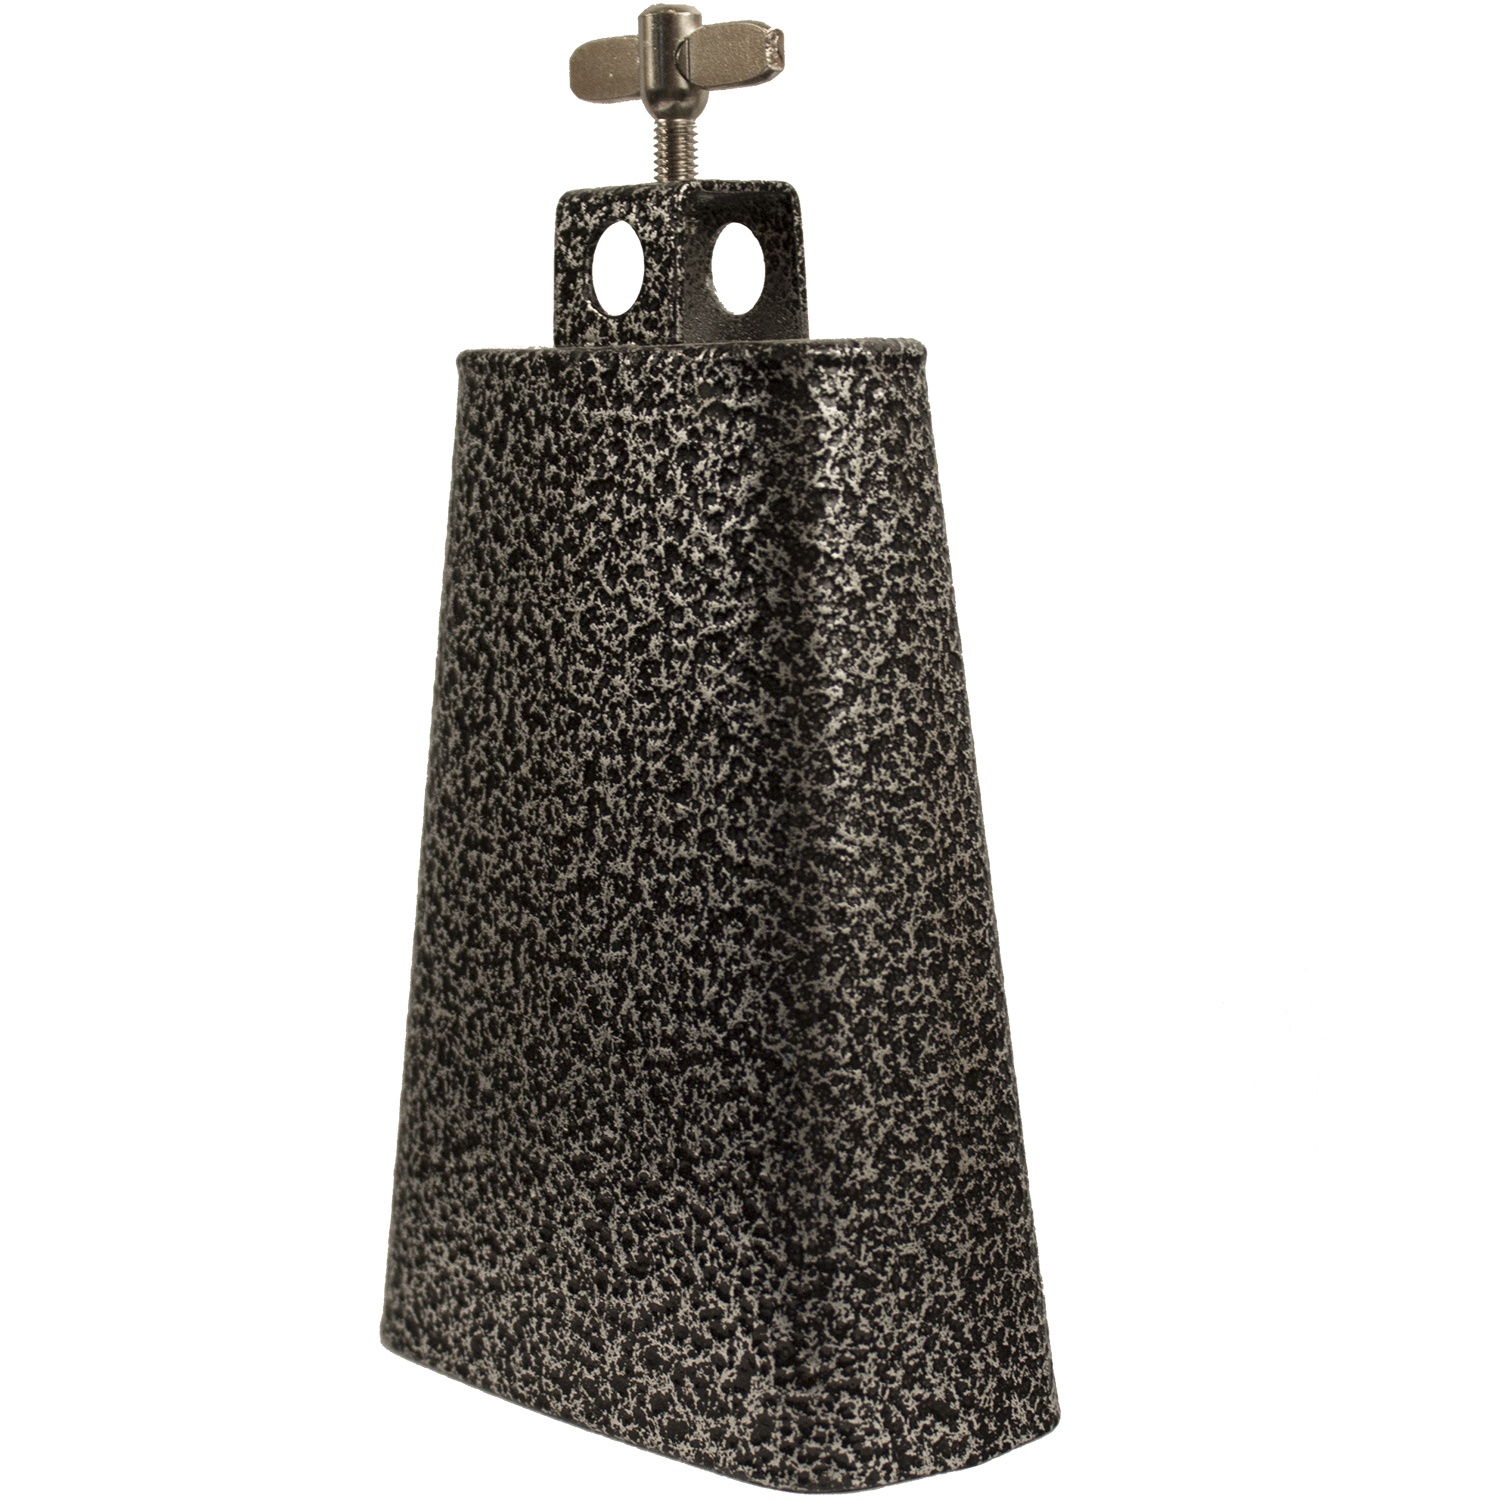 Value Series Cowbell